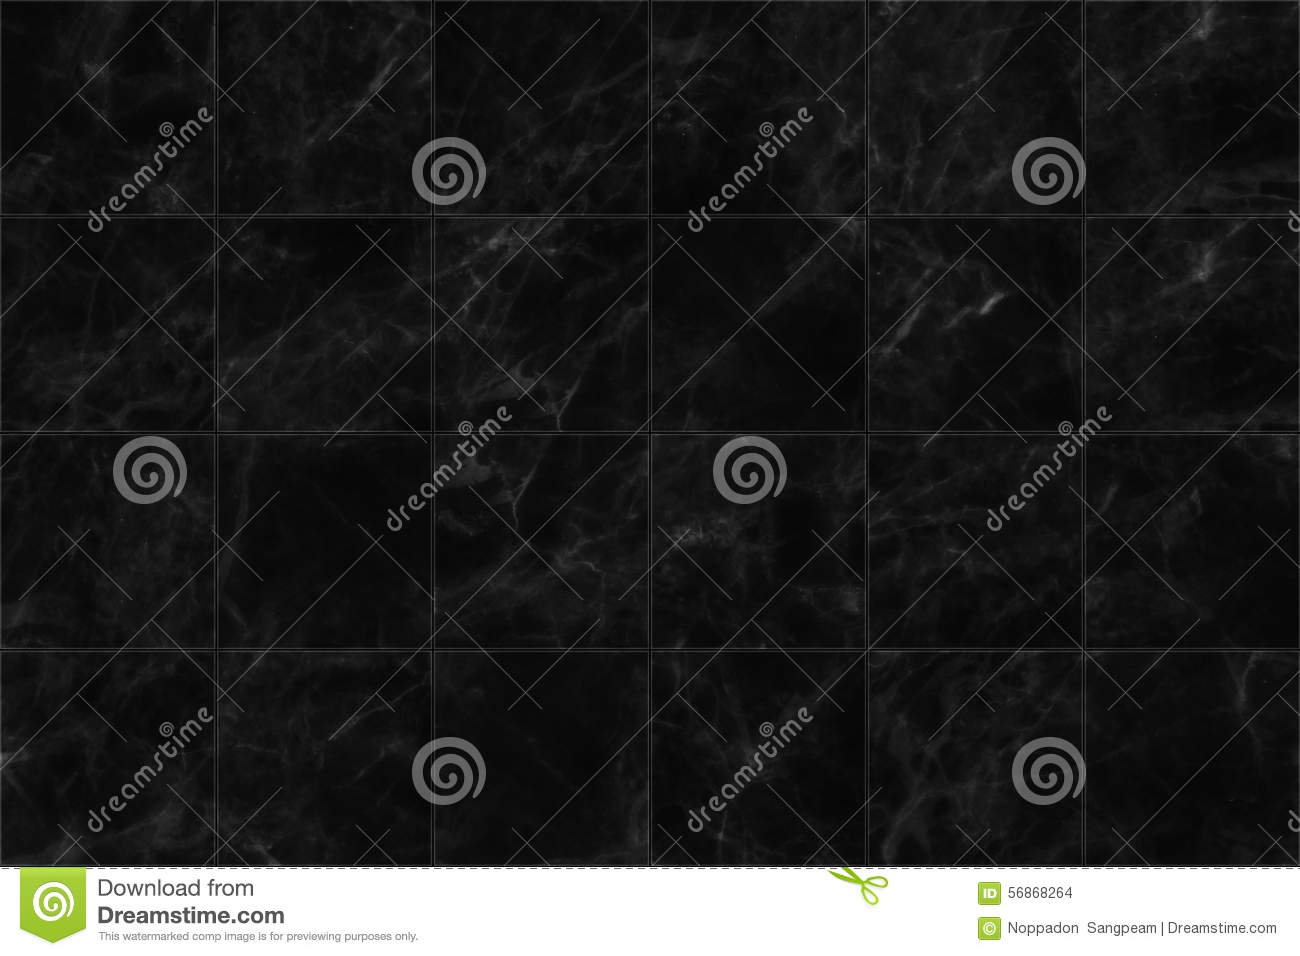 Black Marble Tiles Seamless Flooring Texture For Background And Design